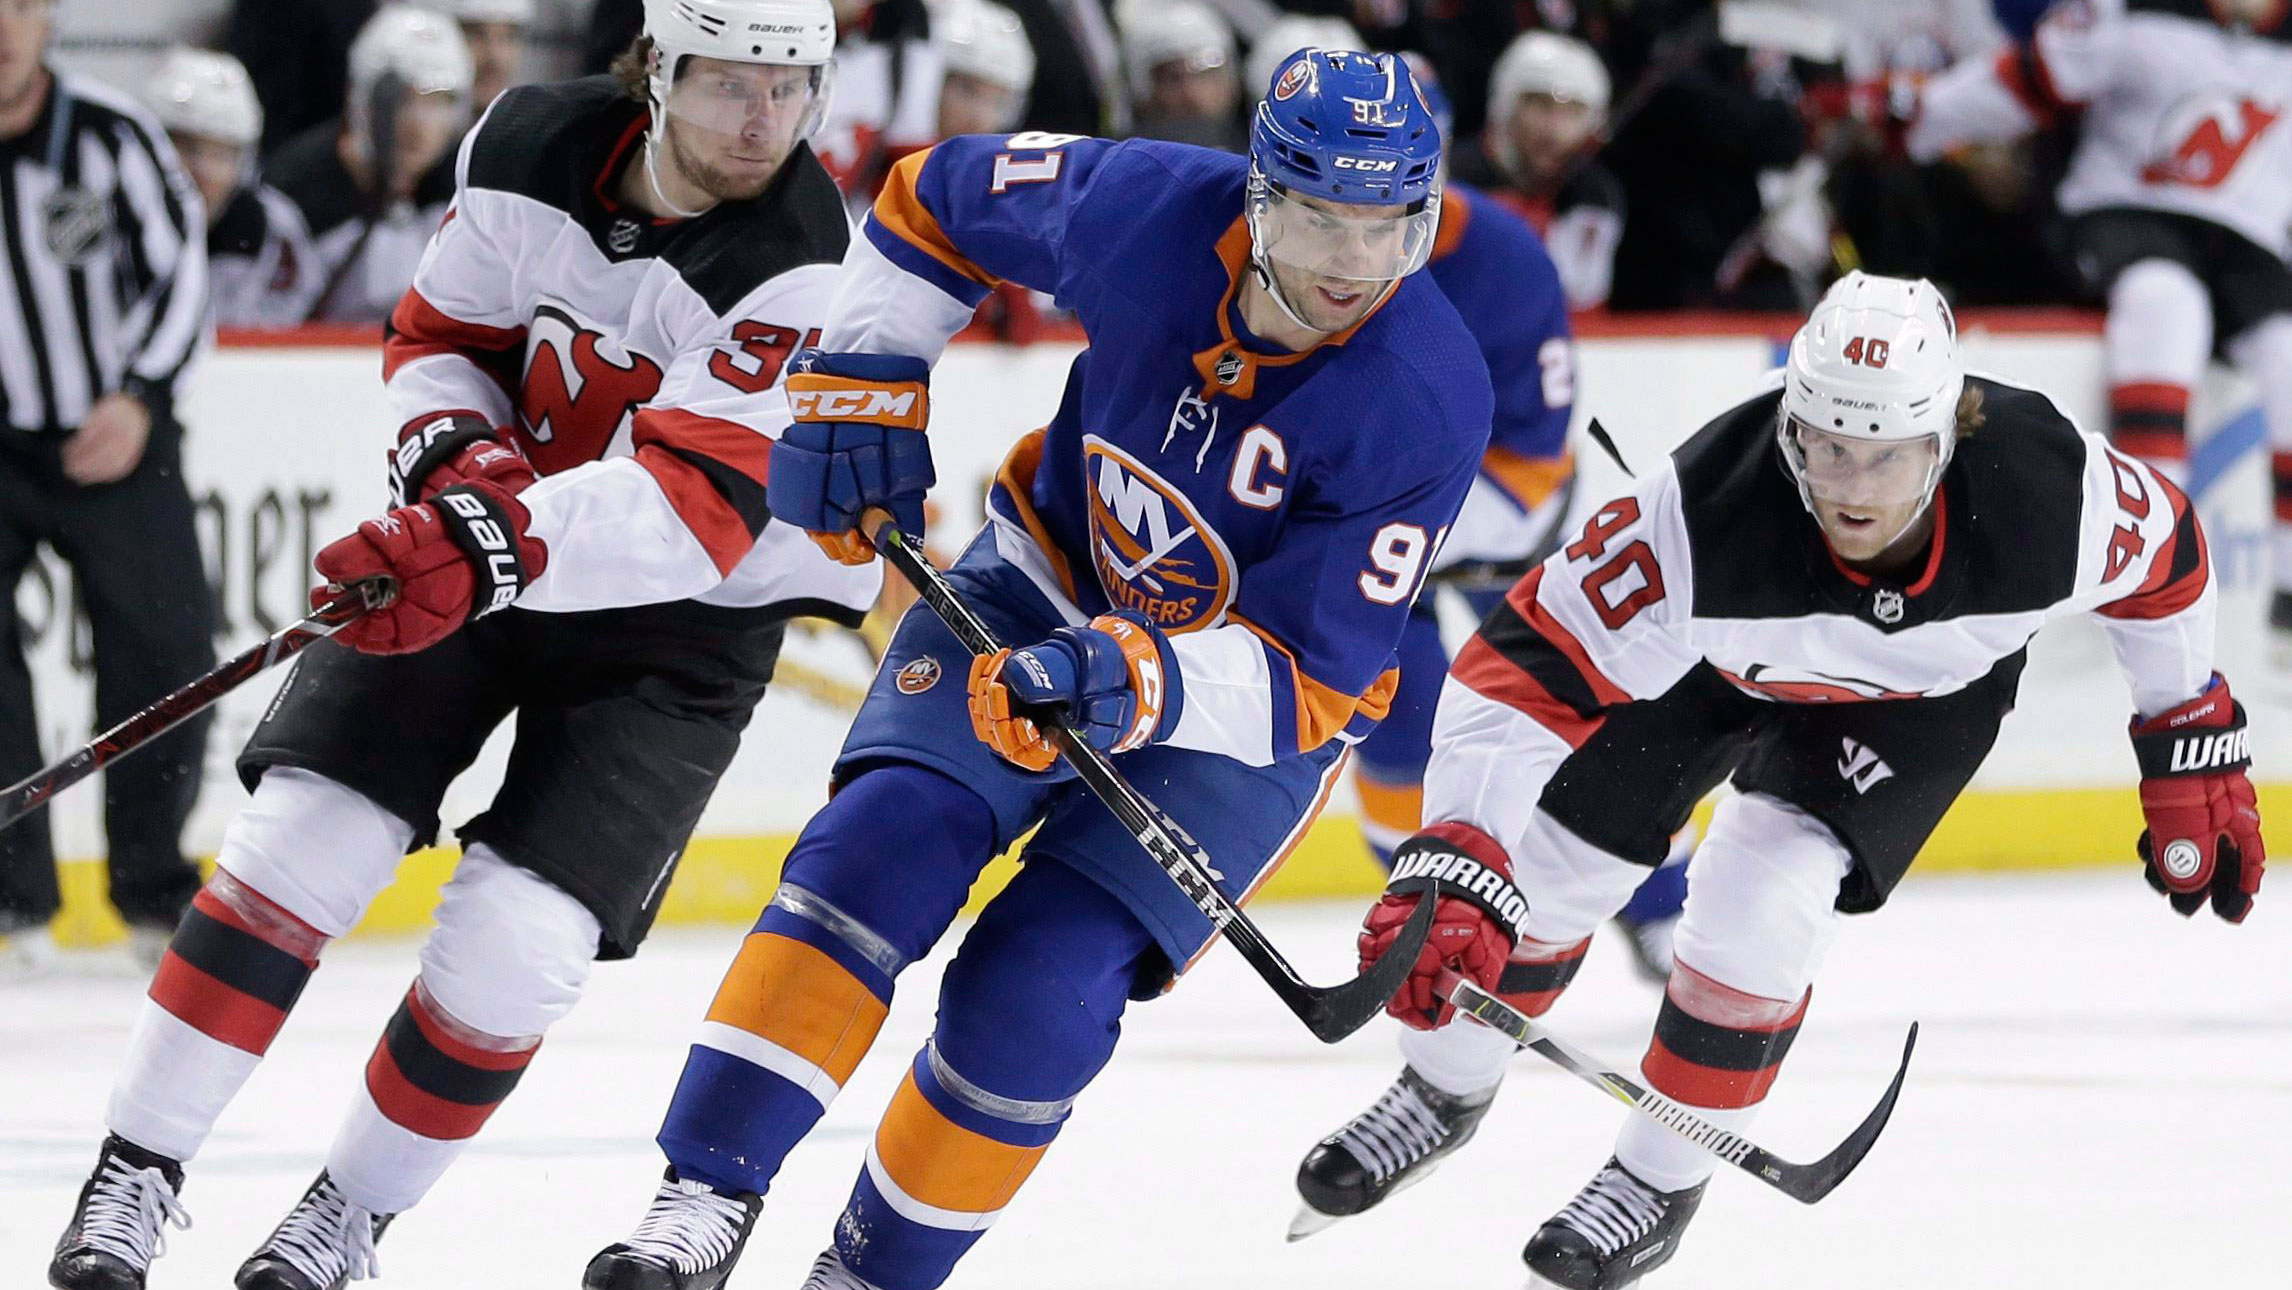 Report: Tavares to meet with 5 teams during NHL interview period